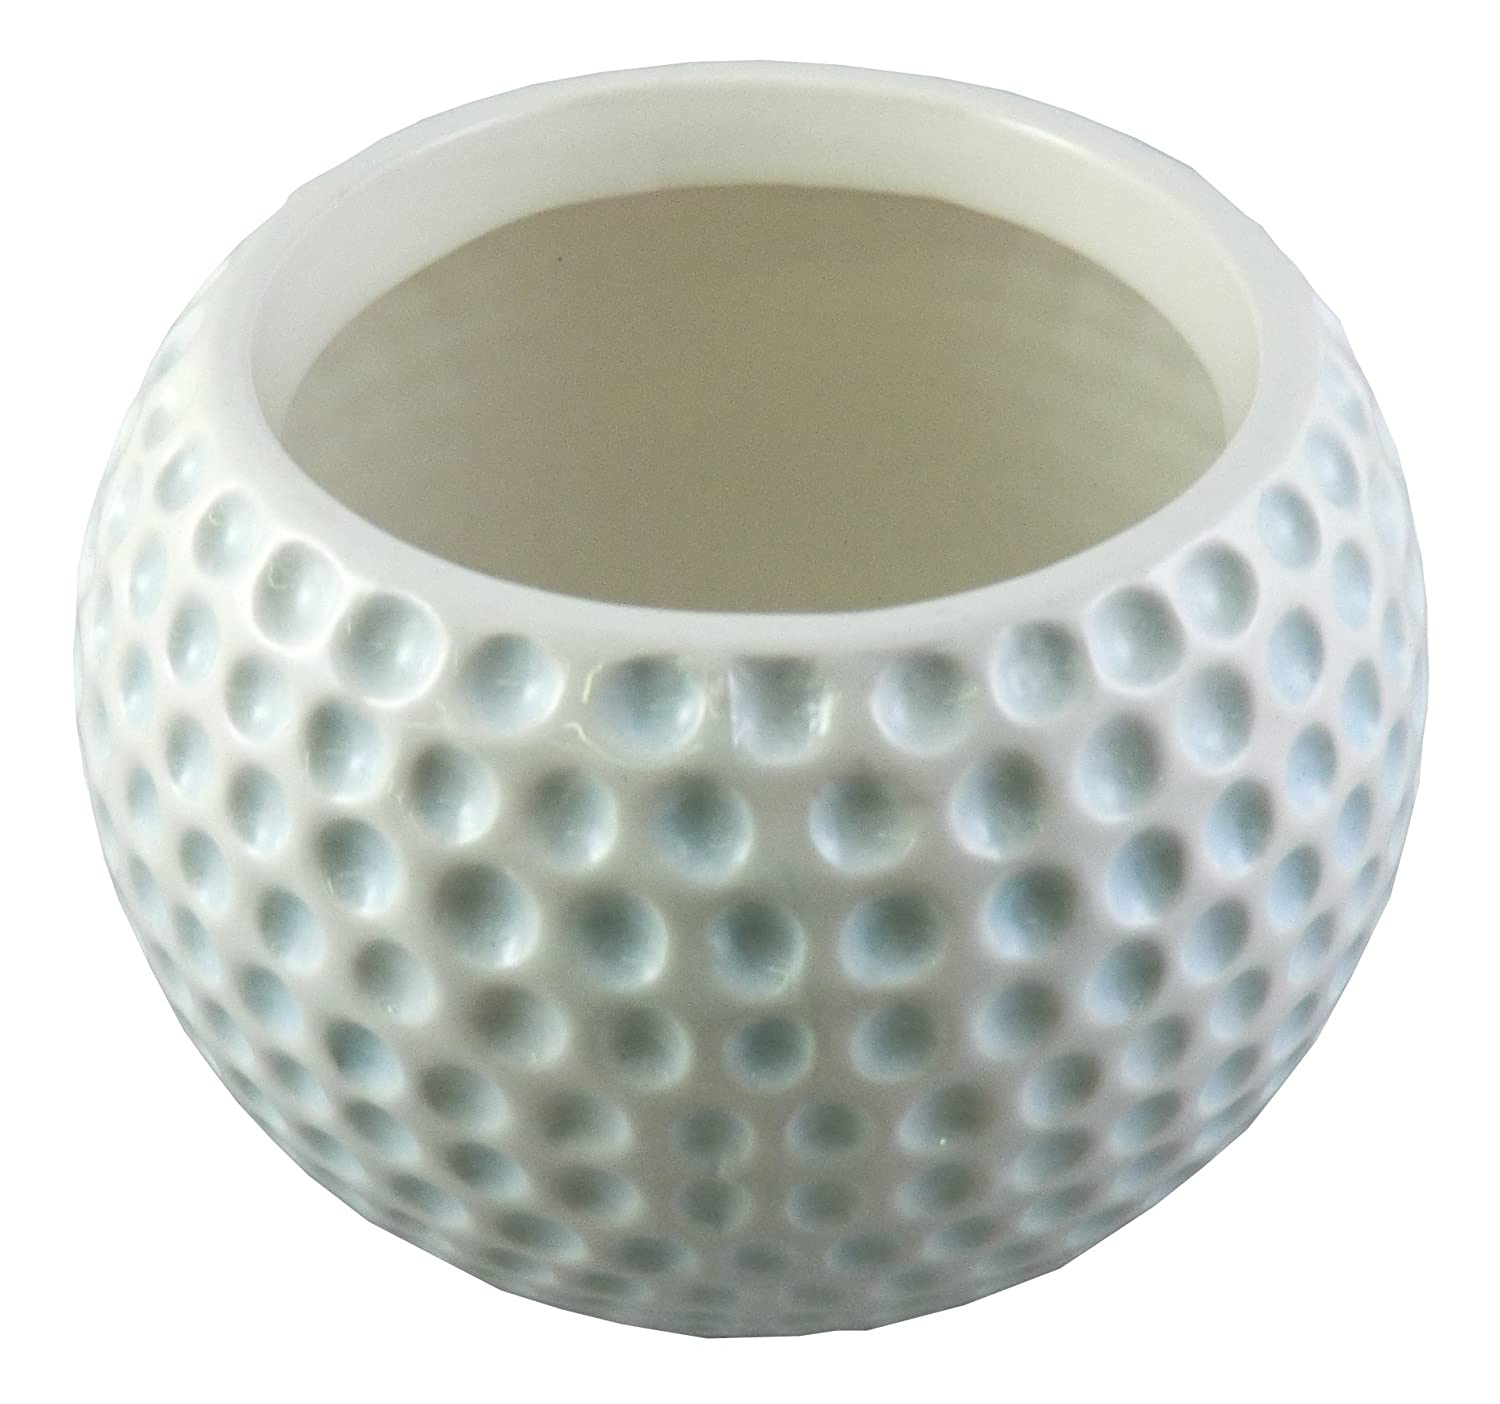 Amazon accents occasions ceramic golf ball planter or amazon accents occasions ceramic golf ball planter or flower arrangement vase 3 34 inch home kitchen reviewsmspy